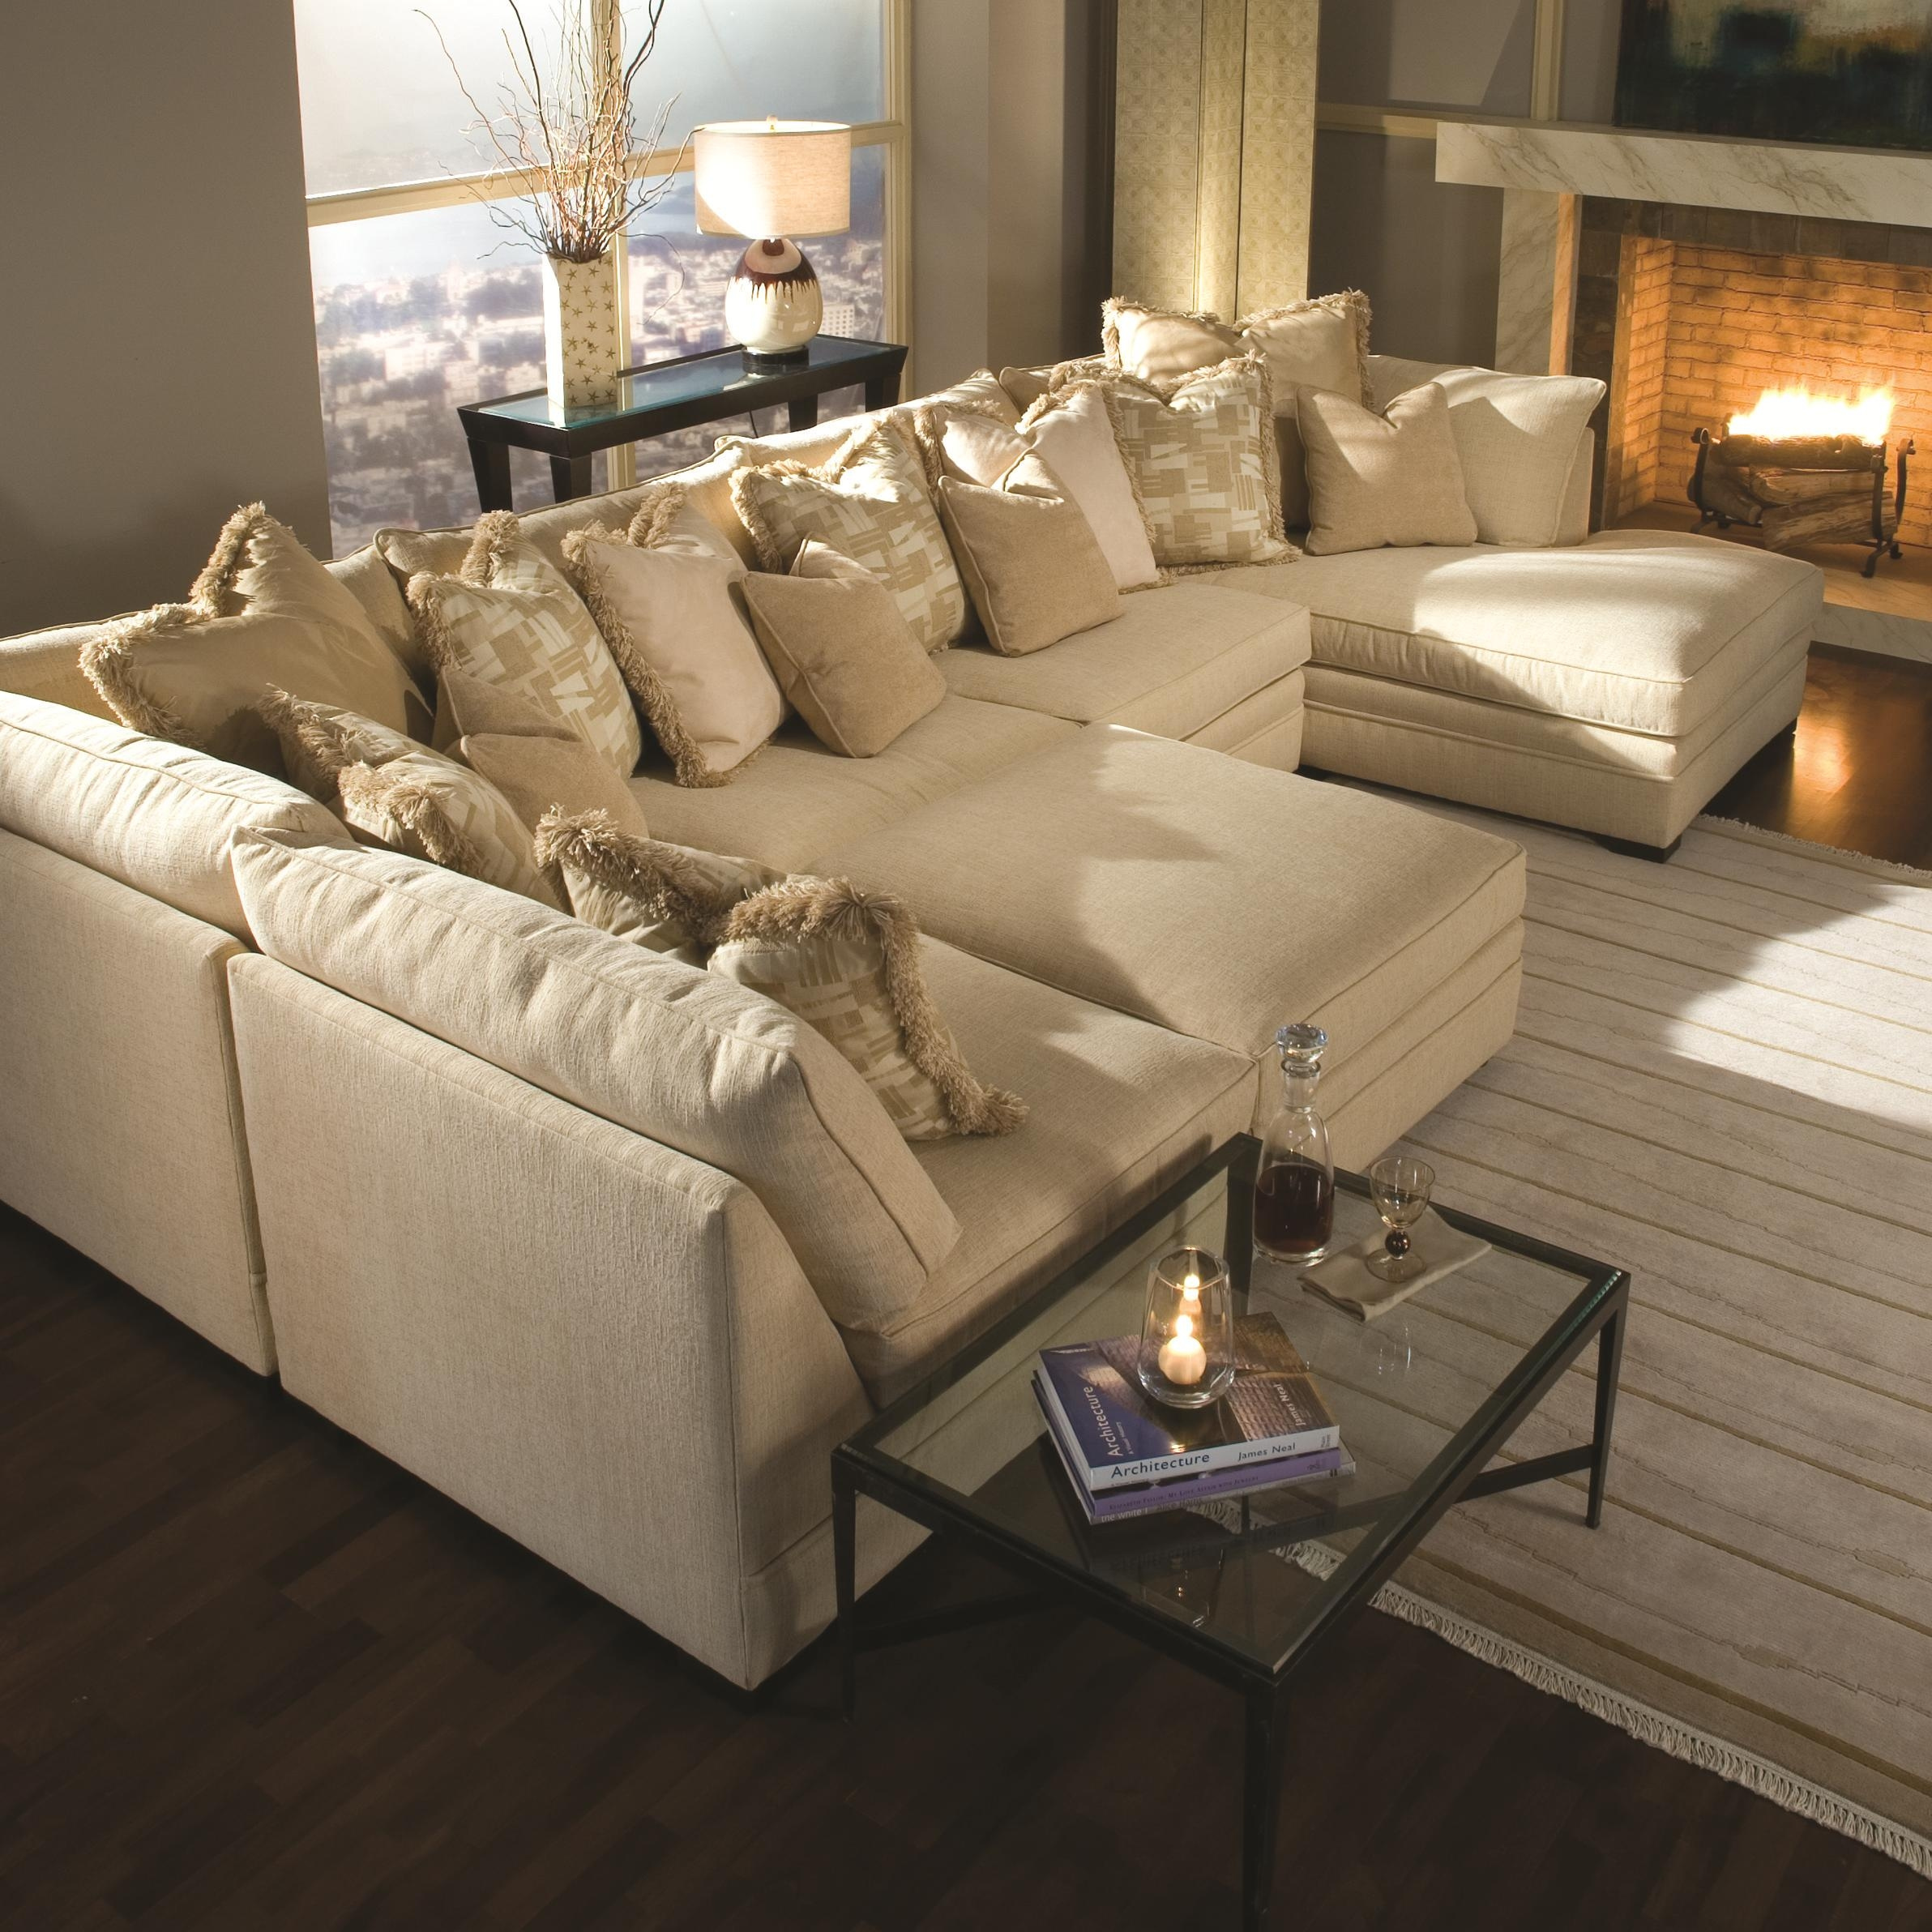 Epic Cheap U Shaped Sectional Sofas 35 About Remodel Backless Within Backless Sectional Sofa (View 9 of 15)